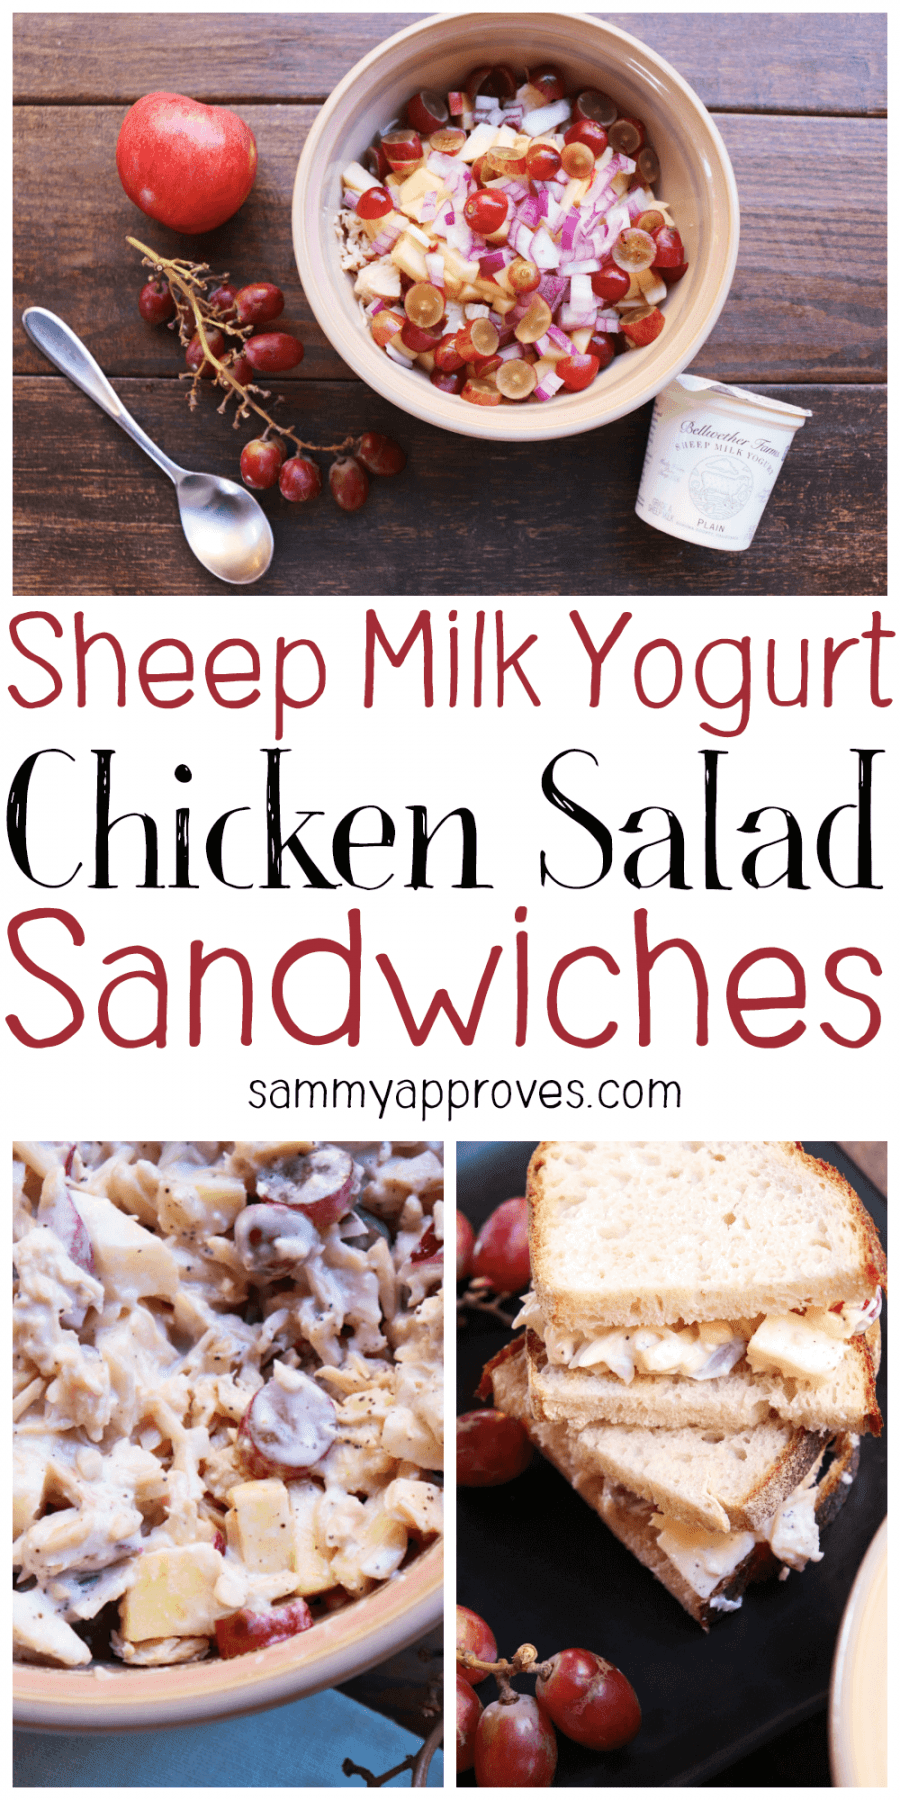 Sheep Milk Yogurt Chicken Salad Sandwiches